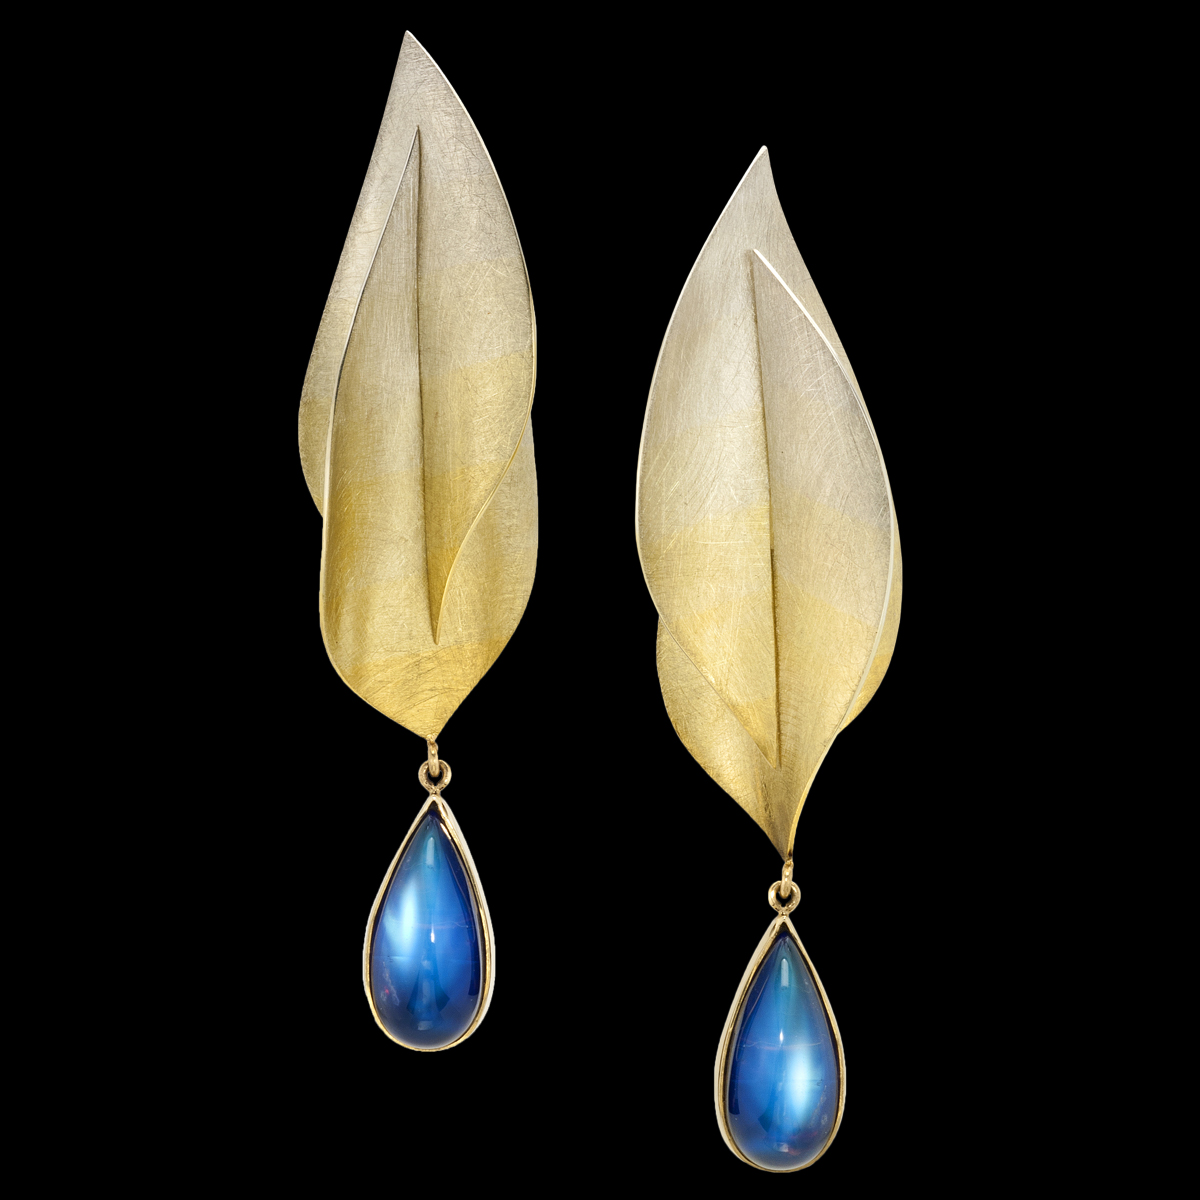 Rainbow Moonstone Earrings Spectra